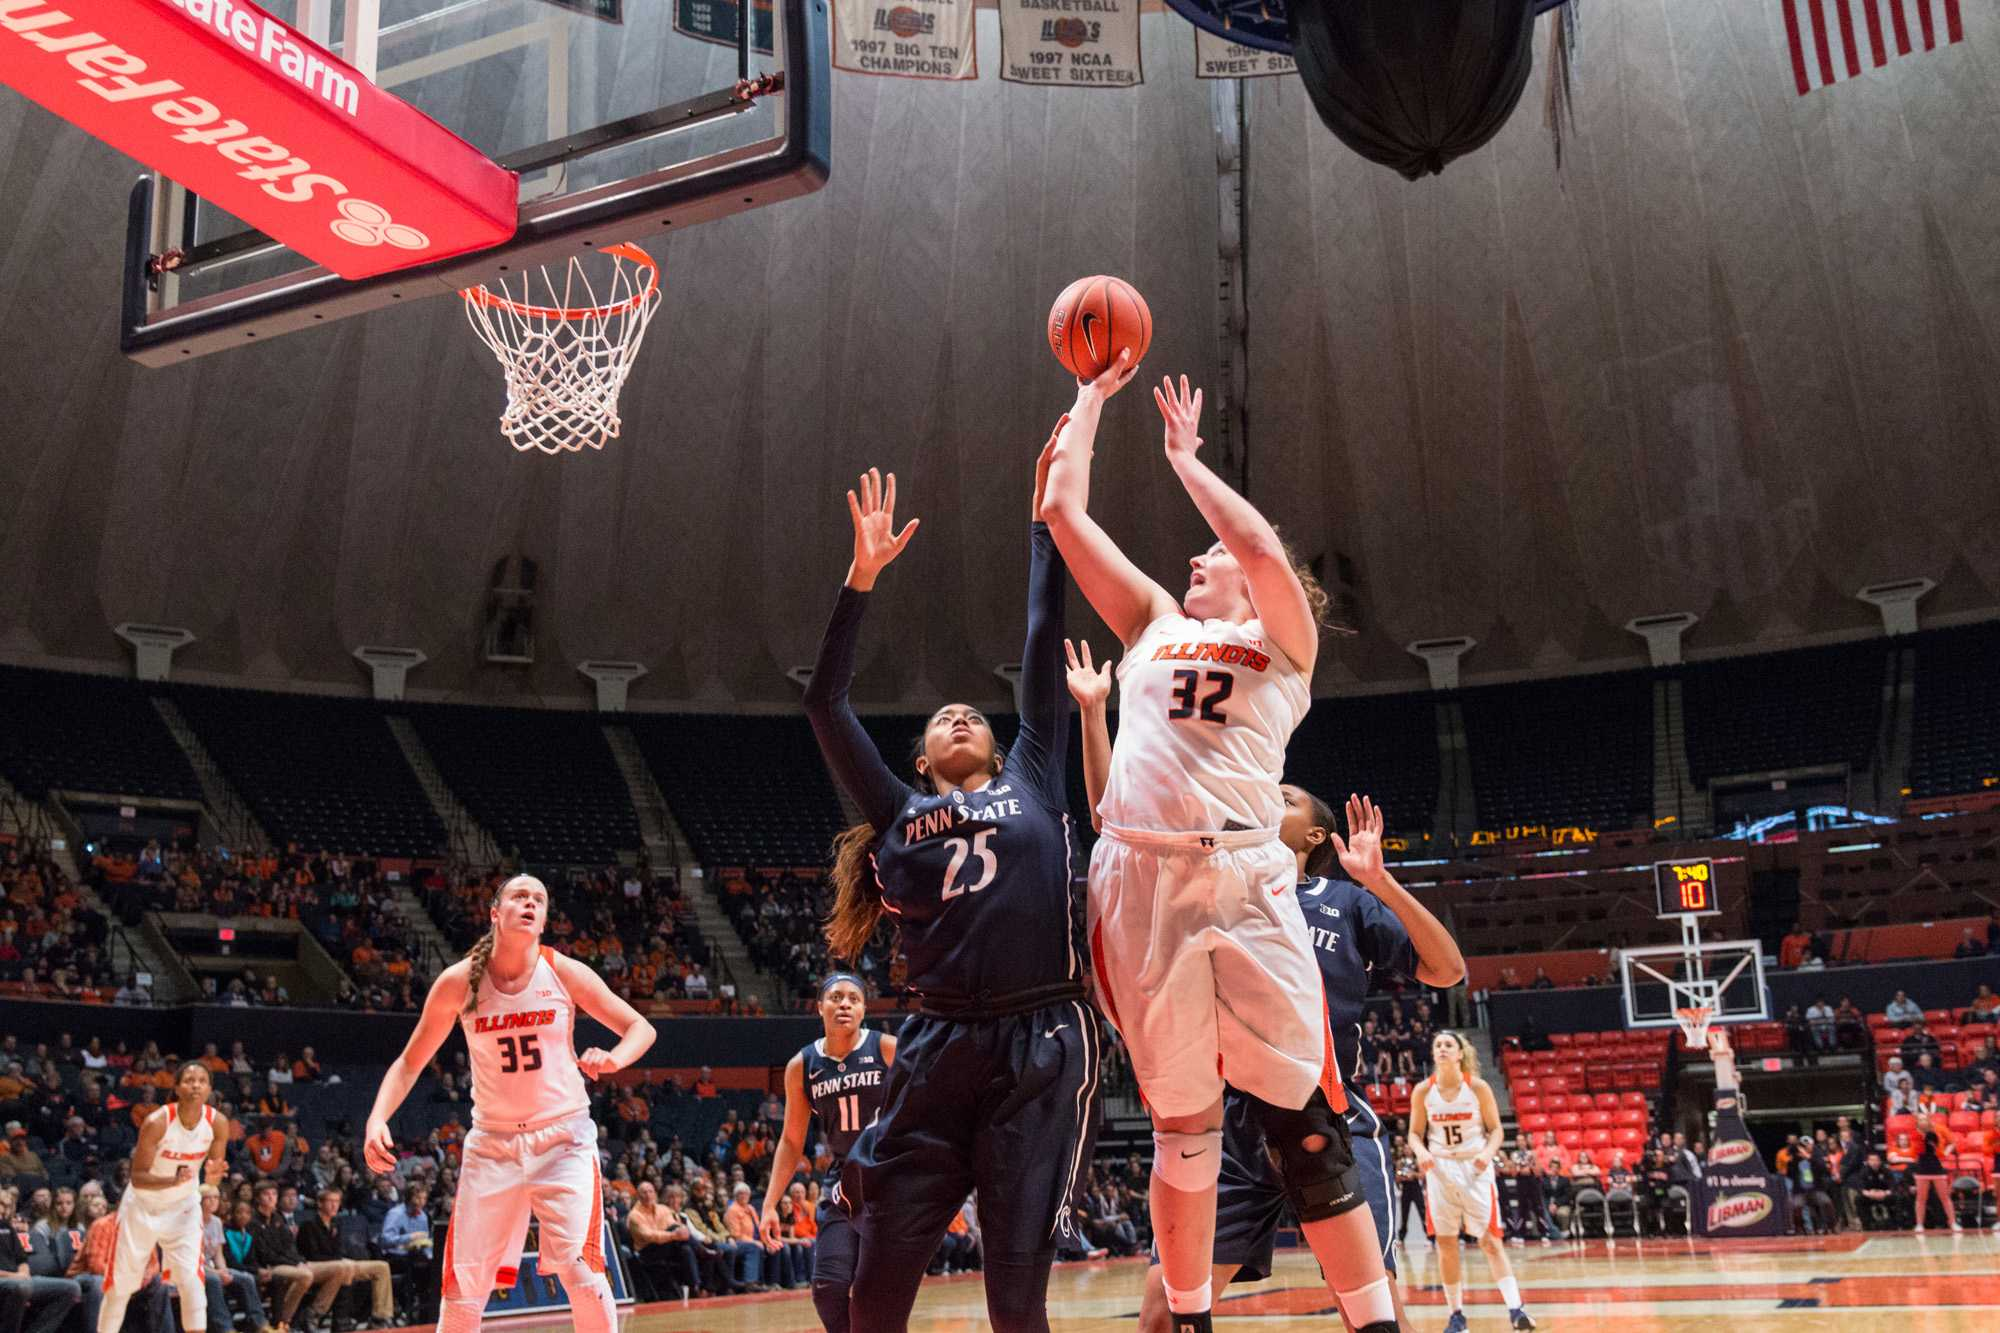 Illinois' Chatrice White goes up for a layup during the game against Penn State at the State Farm Center on January 23. The Illini lost 65-56.